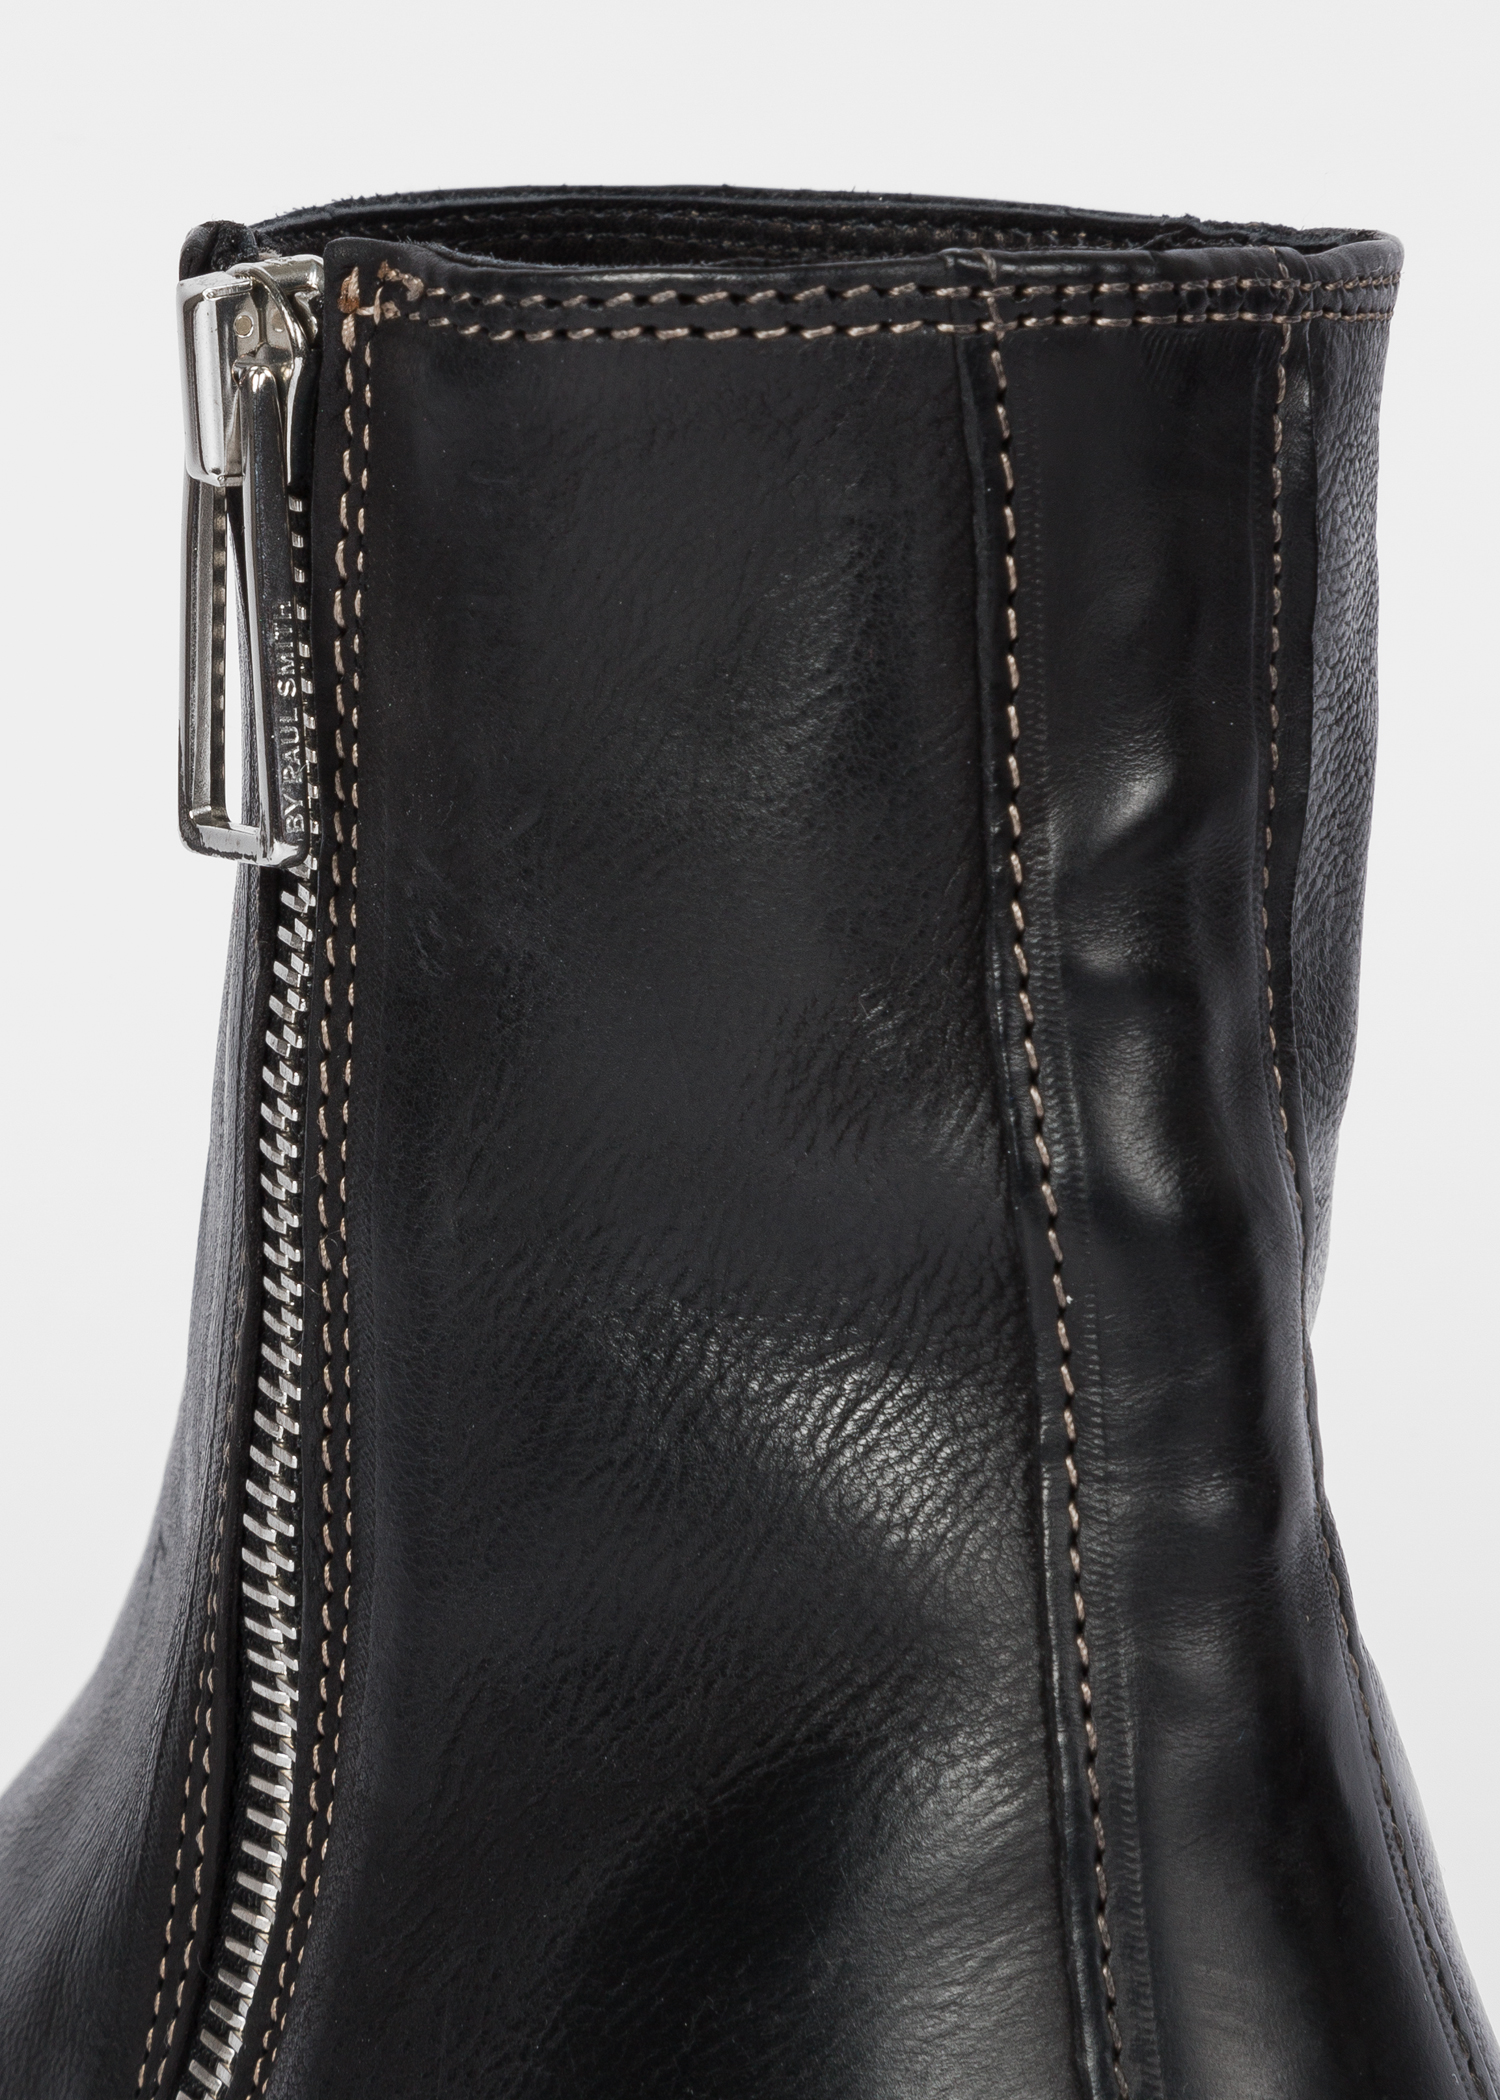 b08863ec5e01 Detailed View - Men s Black Leather  Billy  Zip Boots Paul Smith